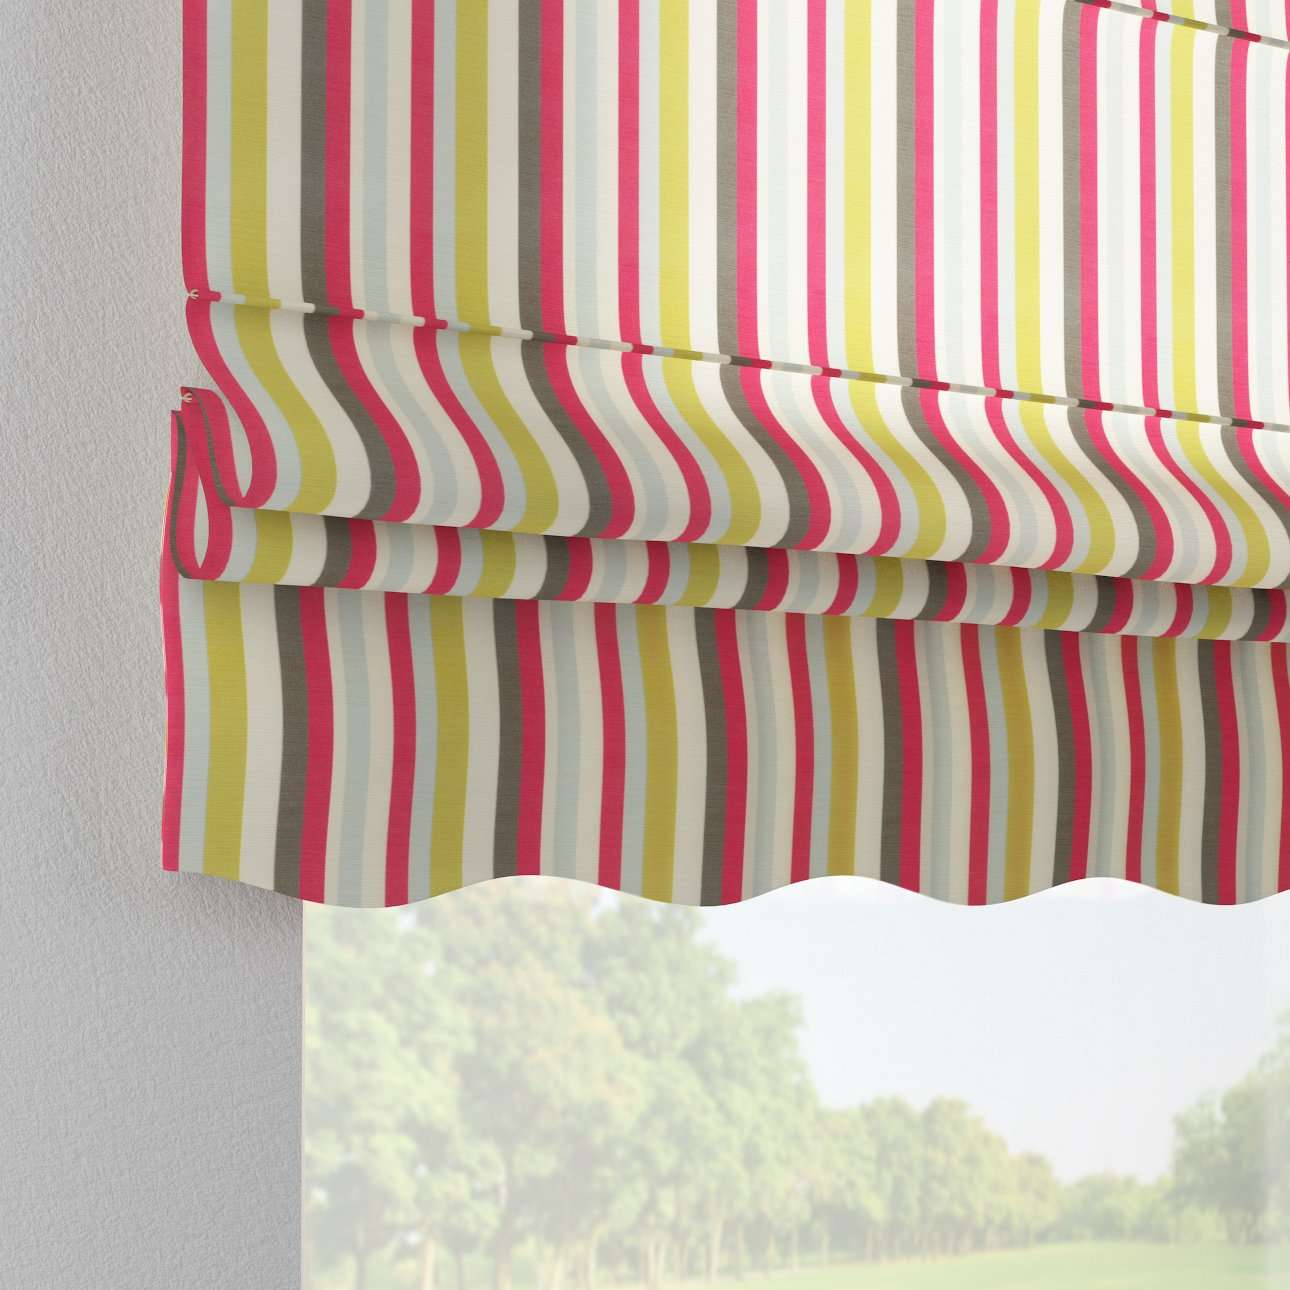 Florence roman blind  80 x 170 cm (31.5 x 67 inch) in collection Flowers, fabric: 140-81